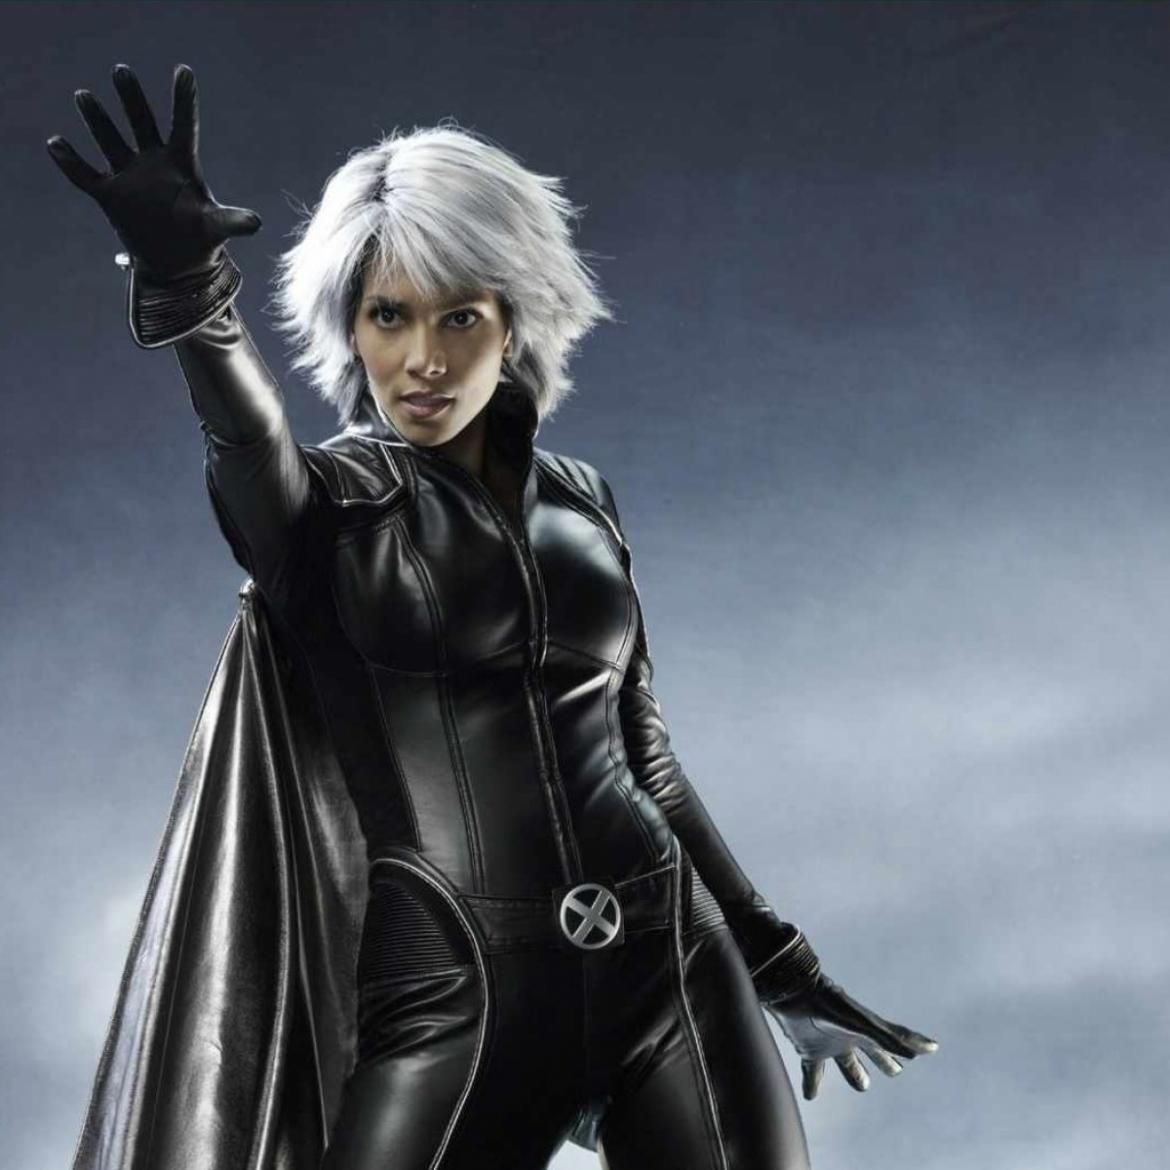 X Men Characters First Look At Halle Berry S Storm In X Men Days Of Future Past Storm Costume X Men Halle Berry Storm